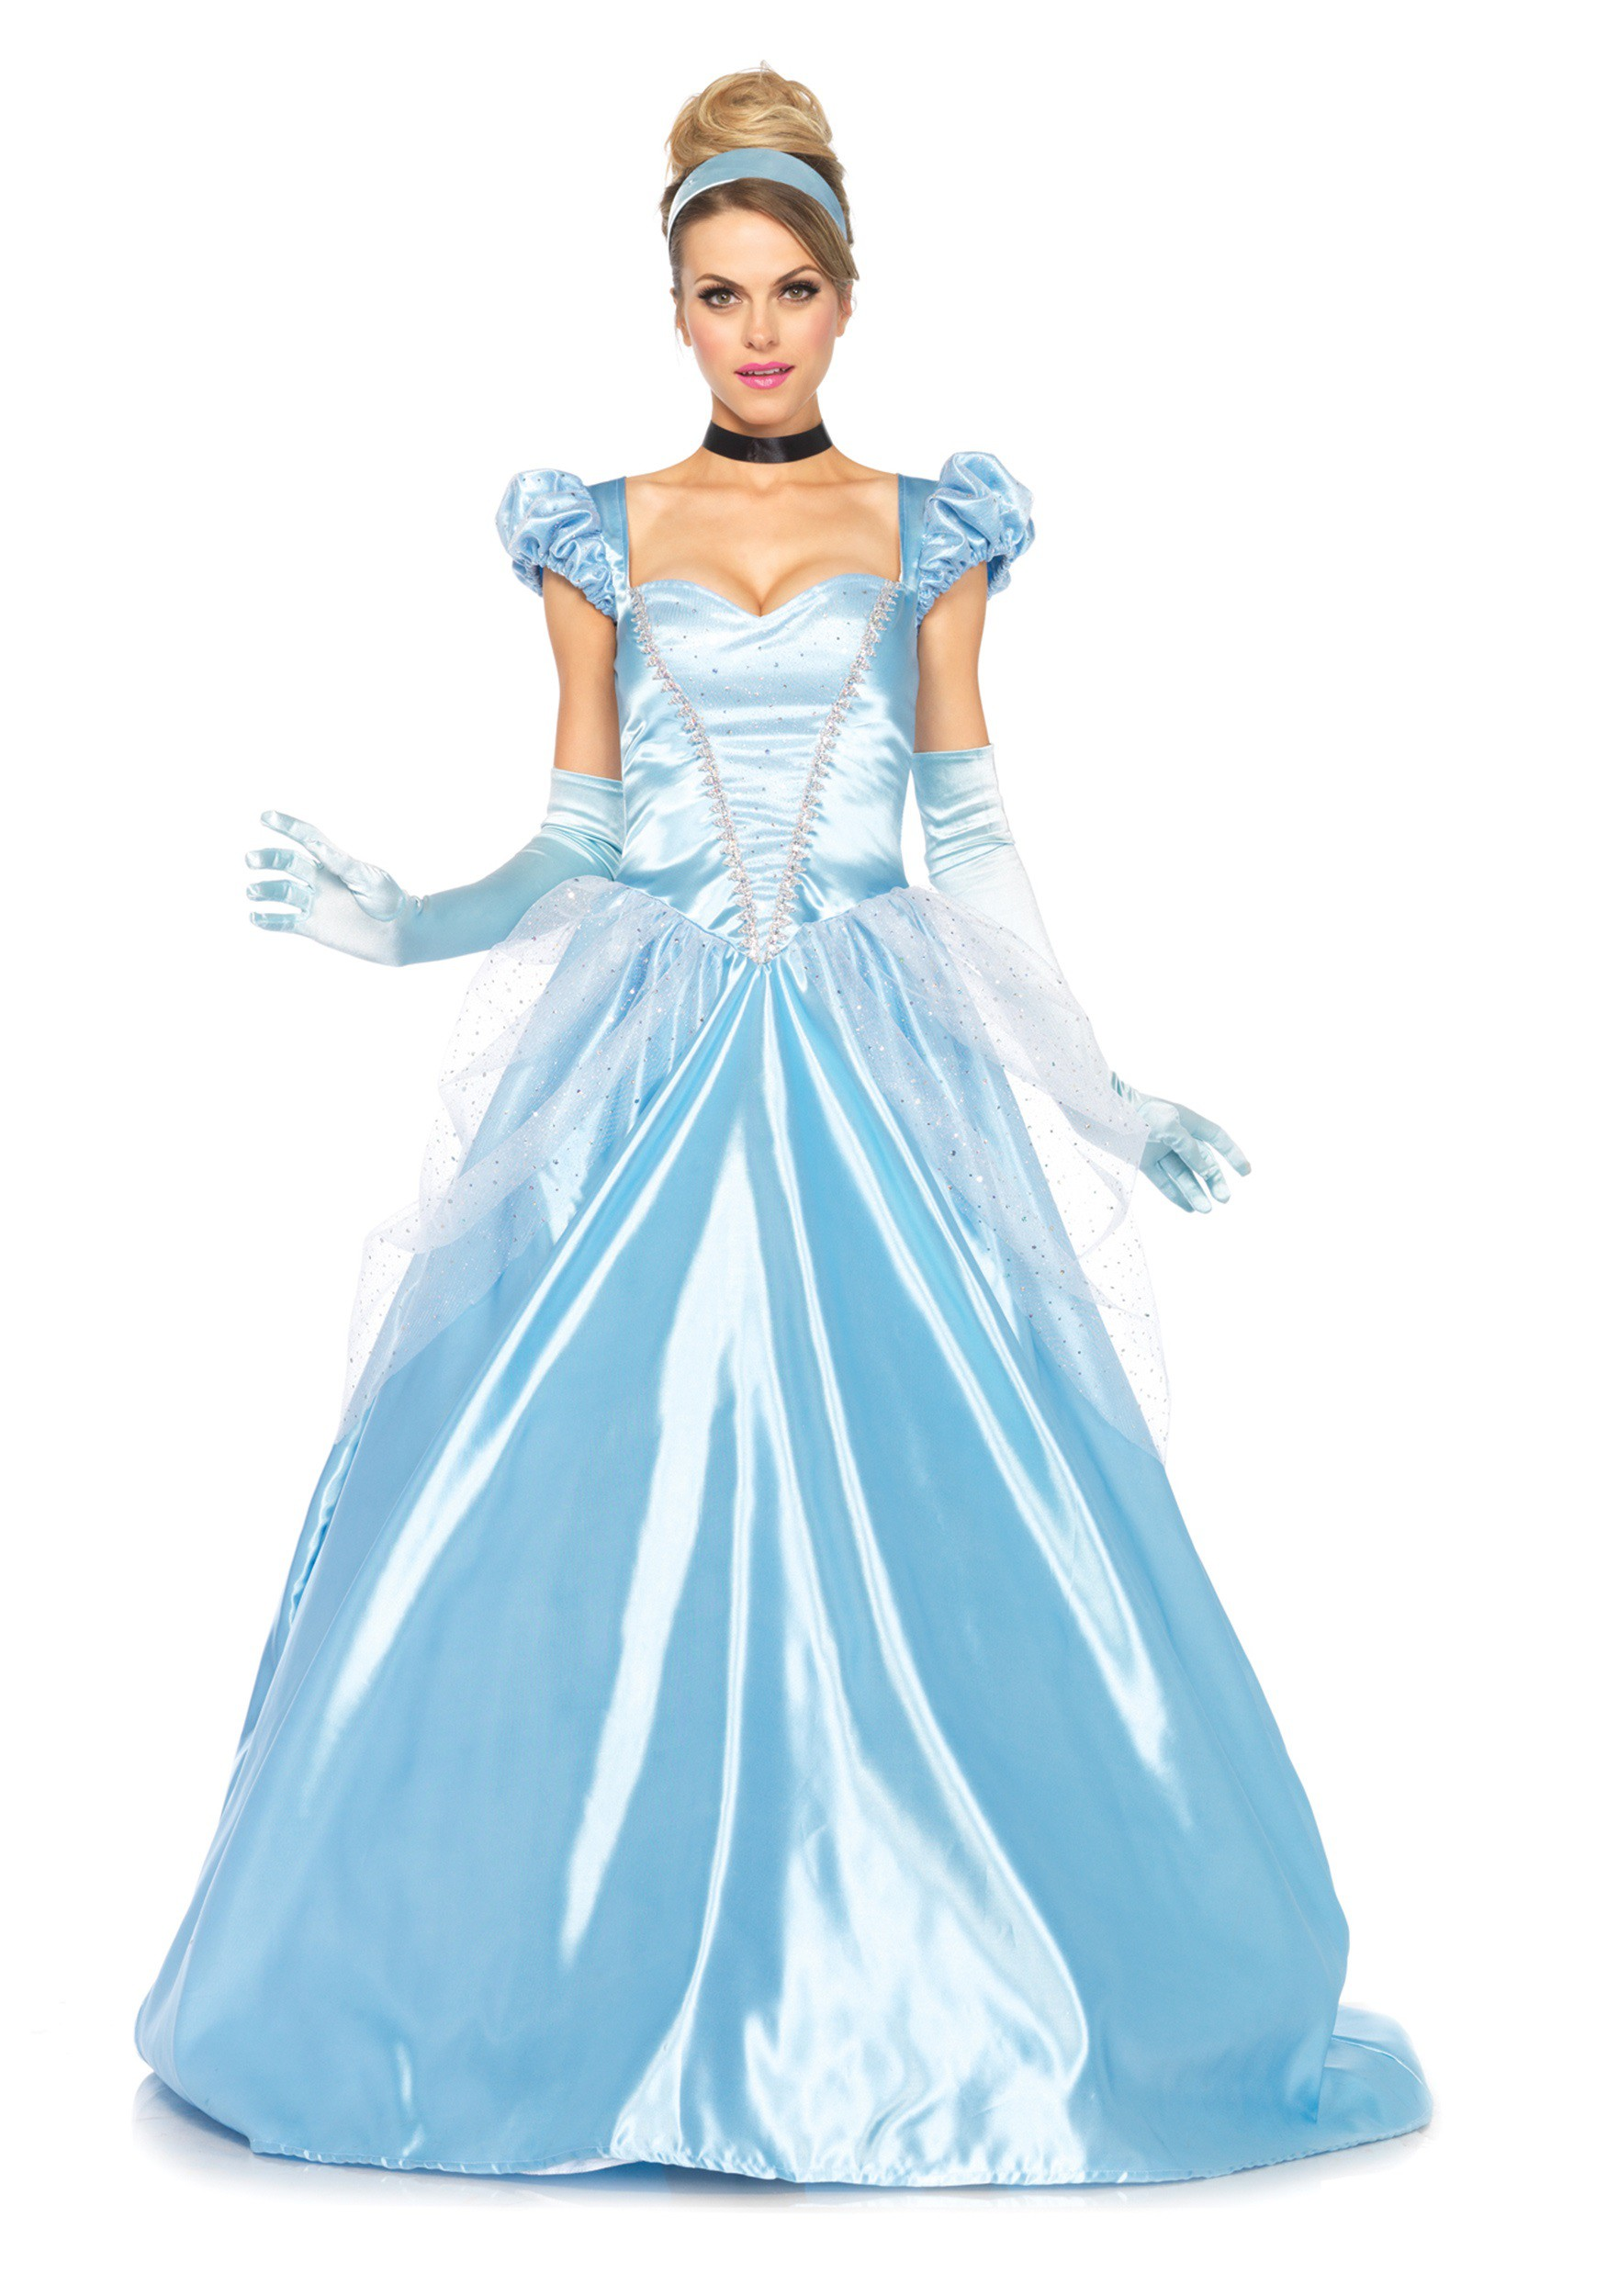 07936b1296a4f Cinderella Costume  Classic Full Length Gown for Women